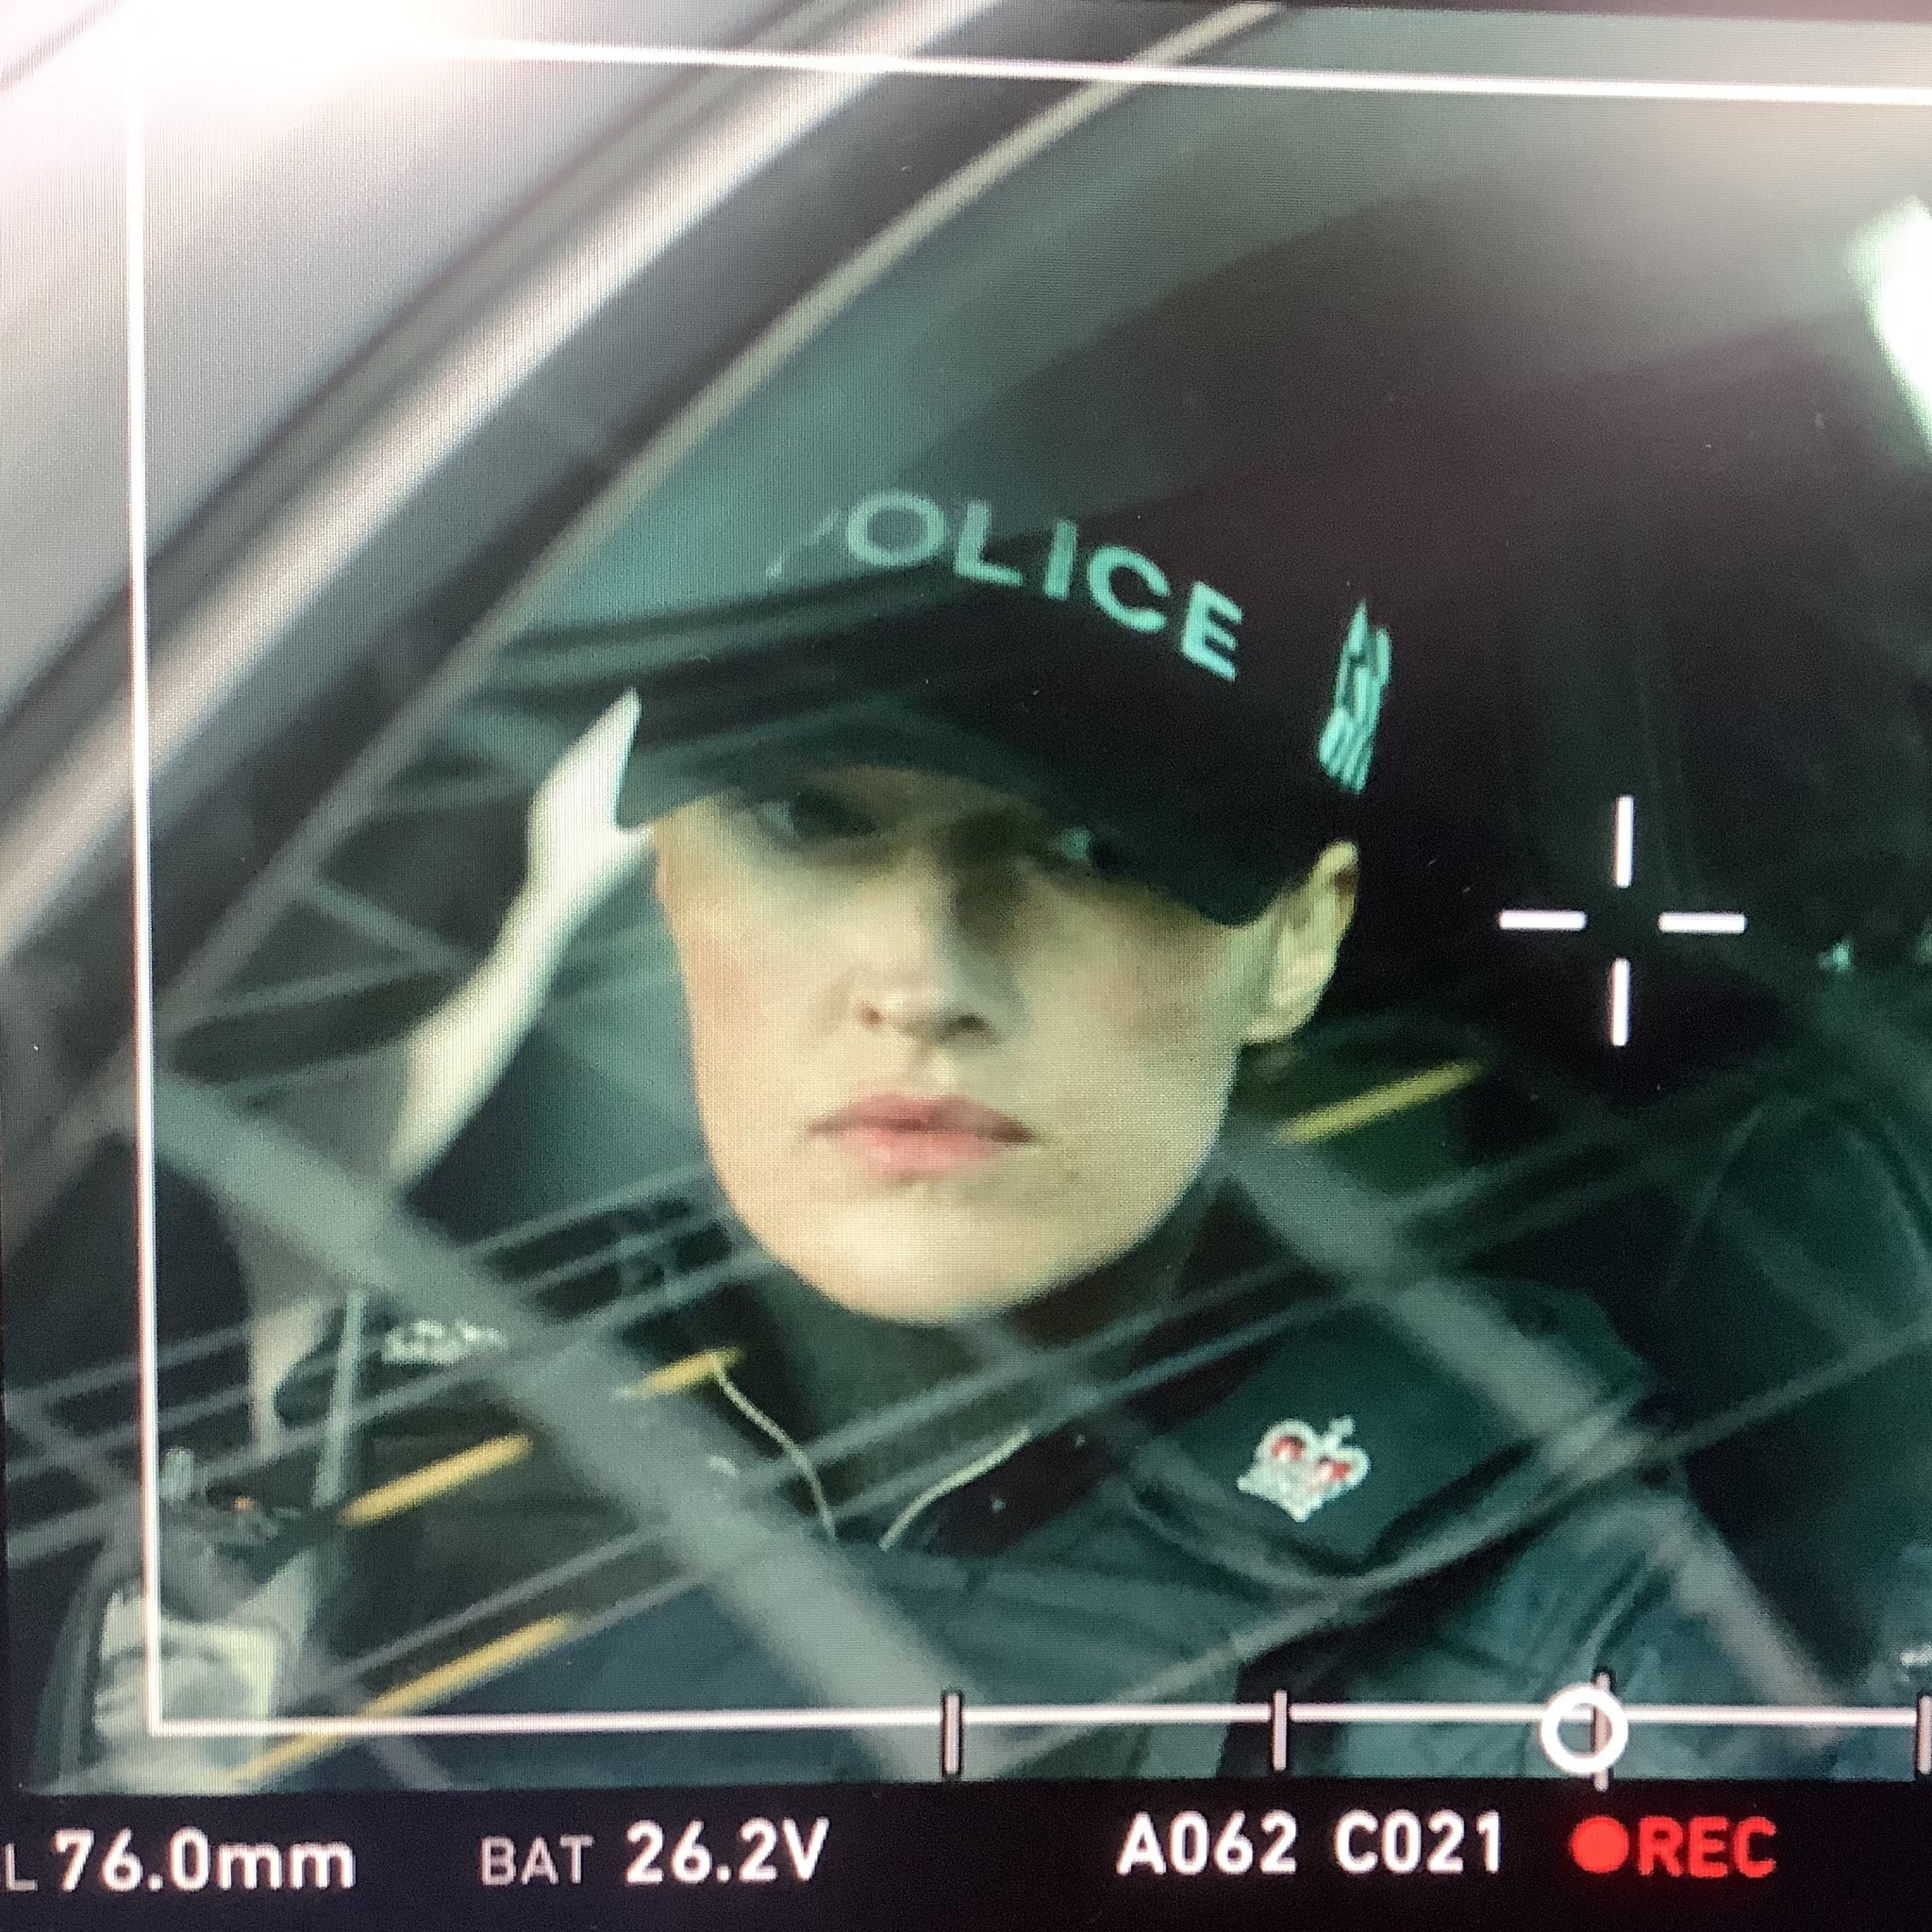 """Kelly Macdonald is shown on camera during filming for """"Line of Duty""""."""